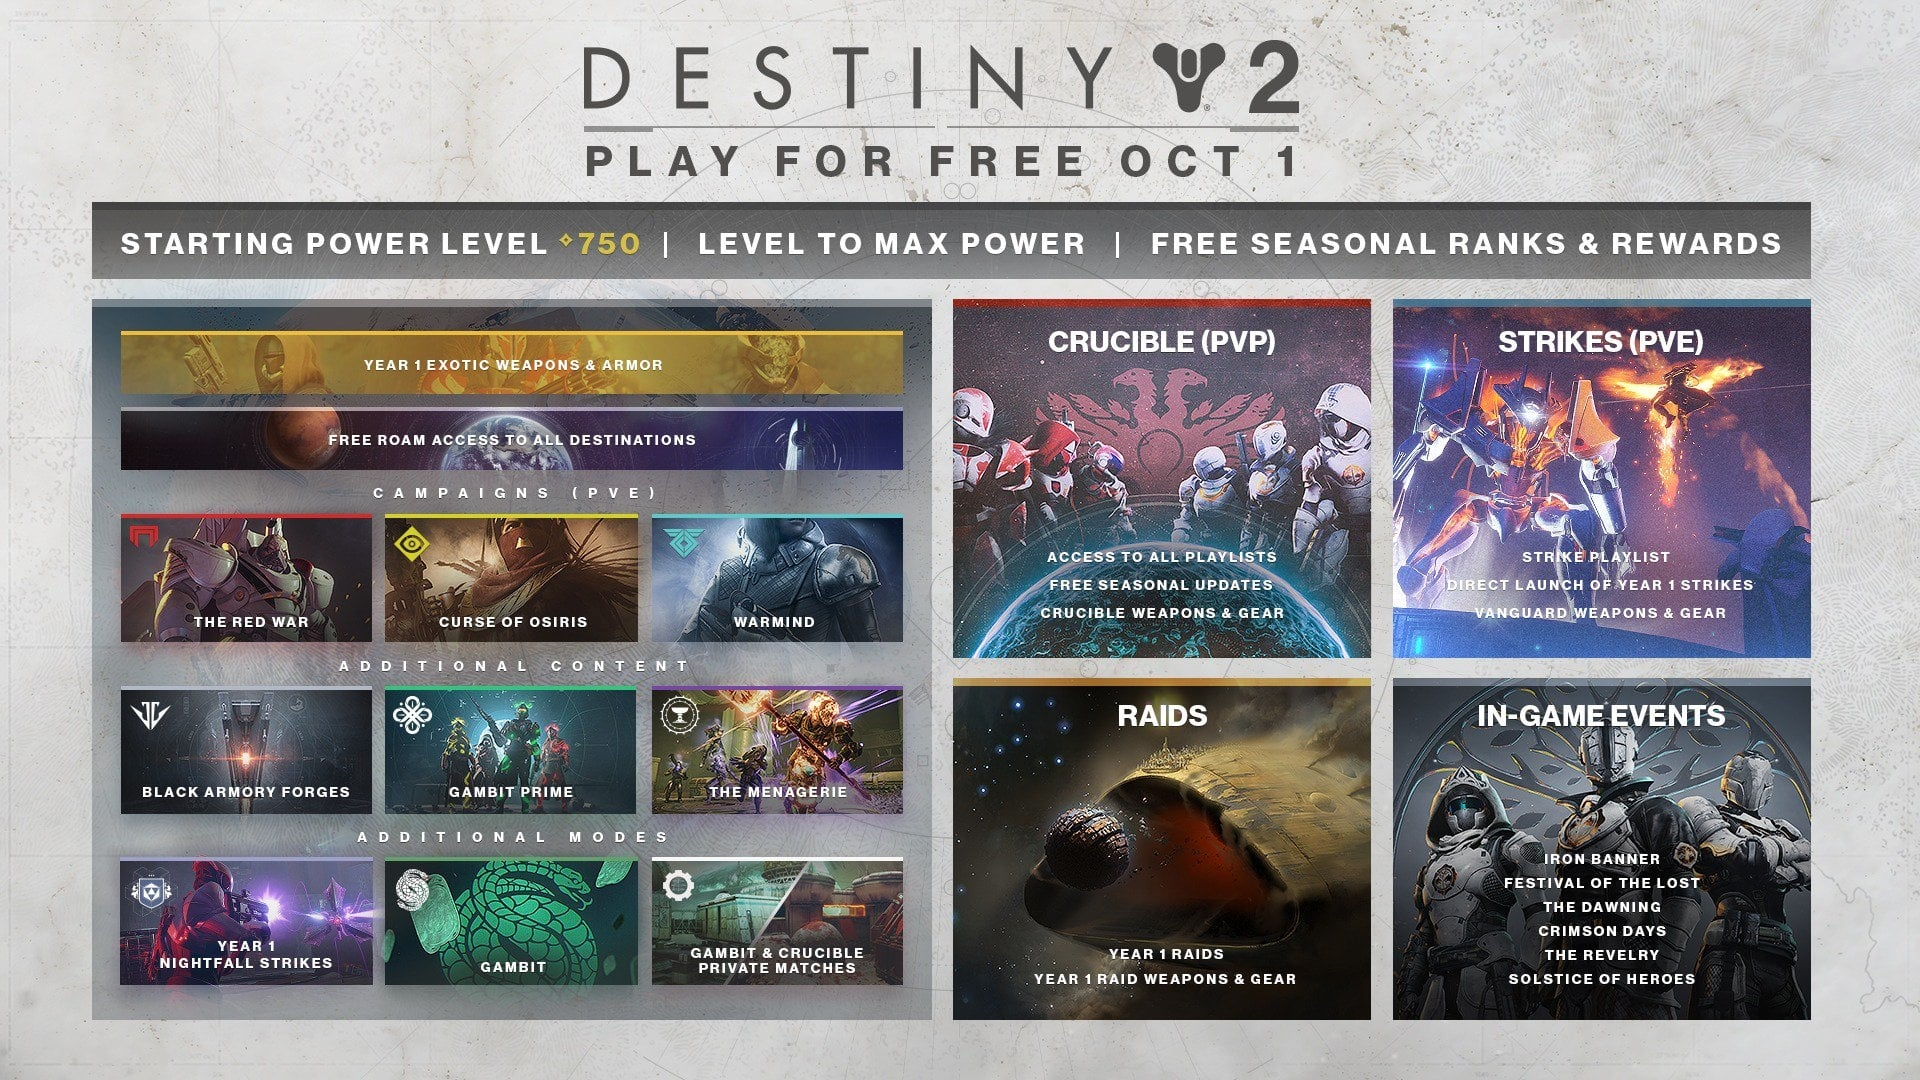 Destiny 2 Included in New Light